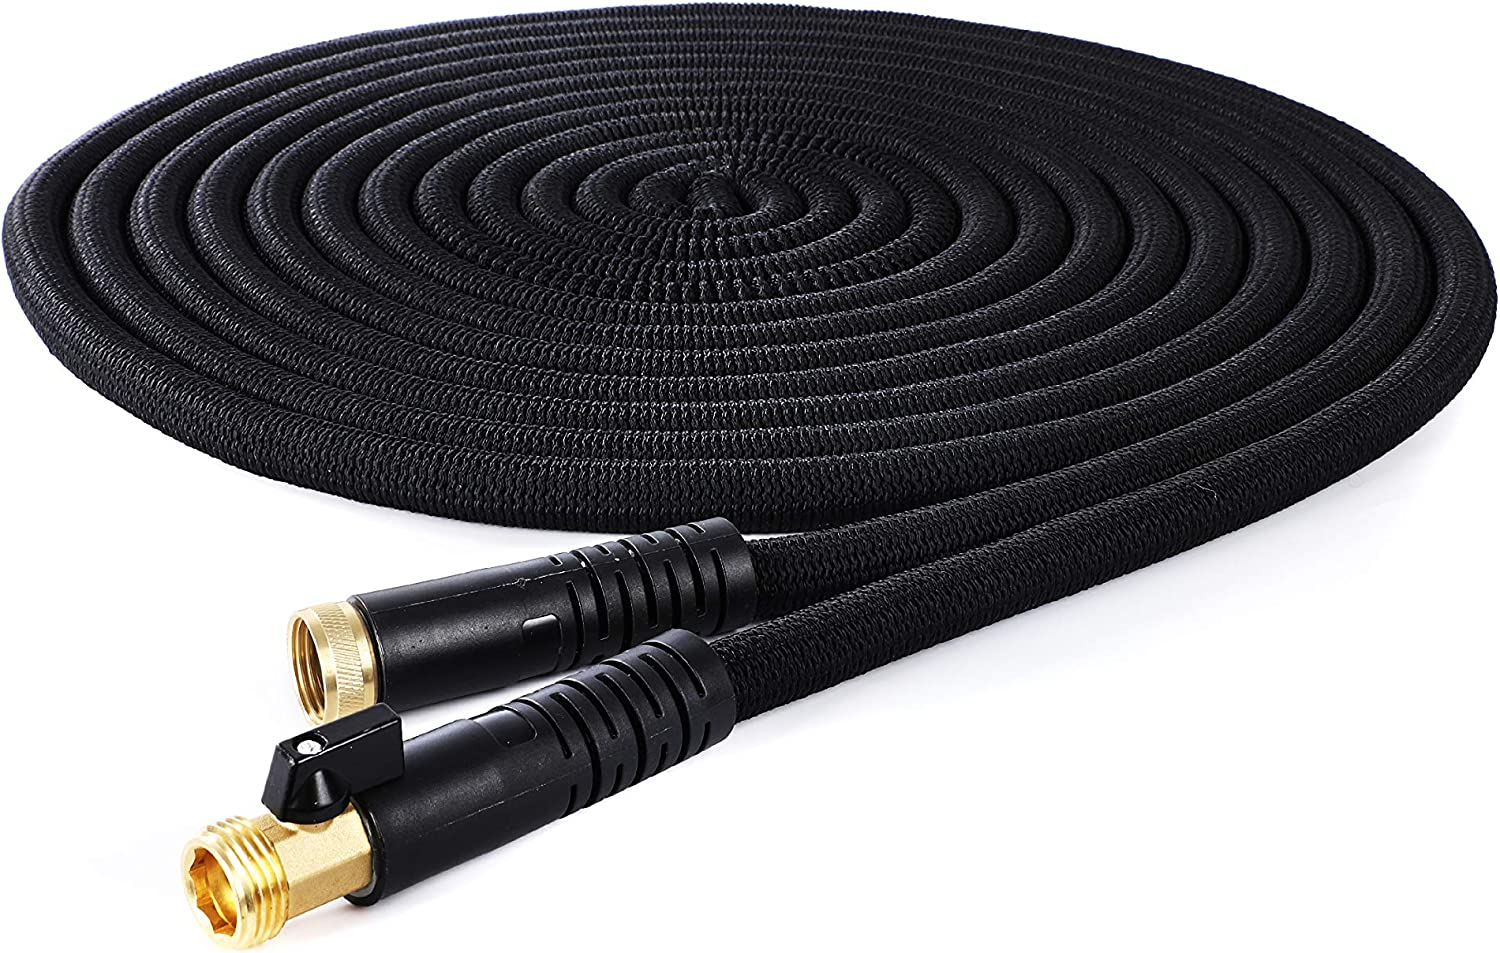 Expandable Garden Hose 100FT, Kink Free Water Hose, Flexible Hose Lightweight Yard Hose, Leak Proof Heavy Duty Expanding Car Wash Hose with Great Pressure, Easy for Mobility and Storage